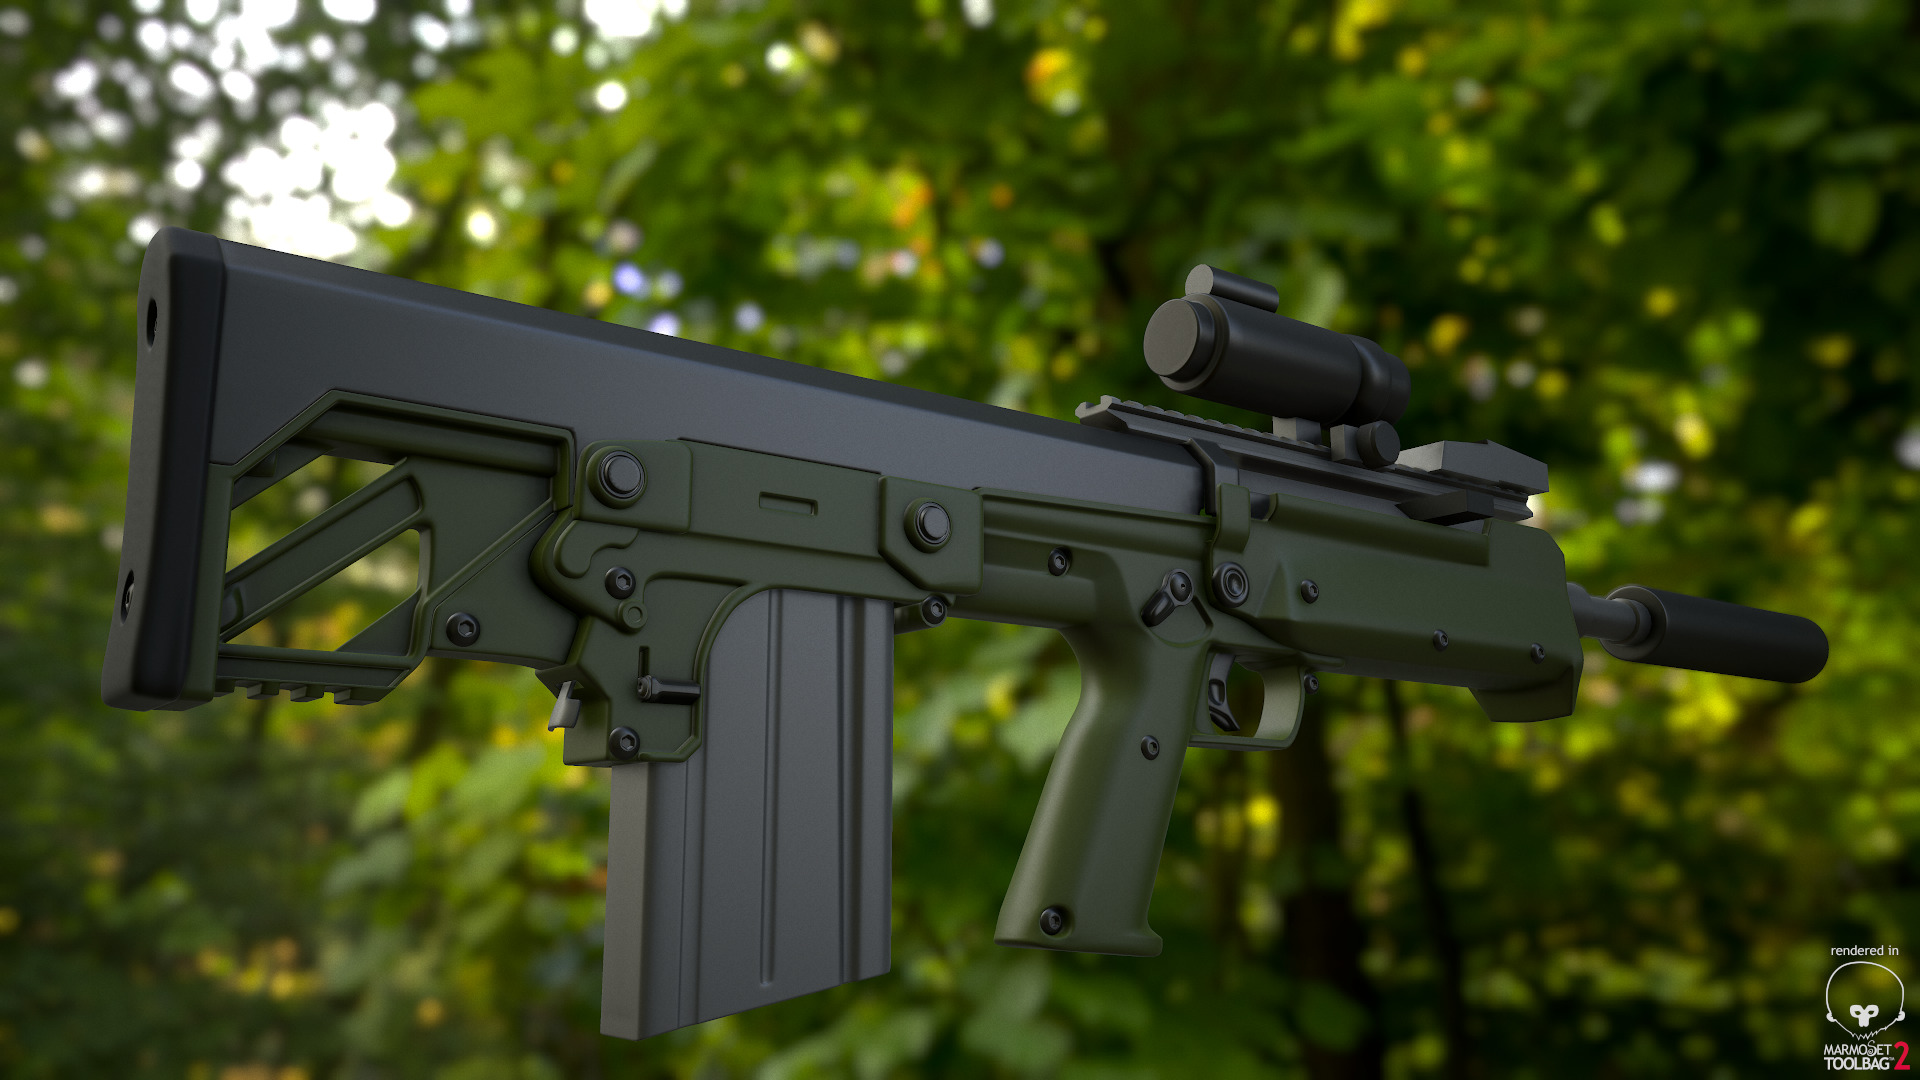 keltec_rfb_wip3_by_bit_winchester-d73x1cy.png